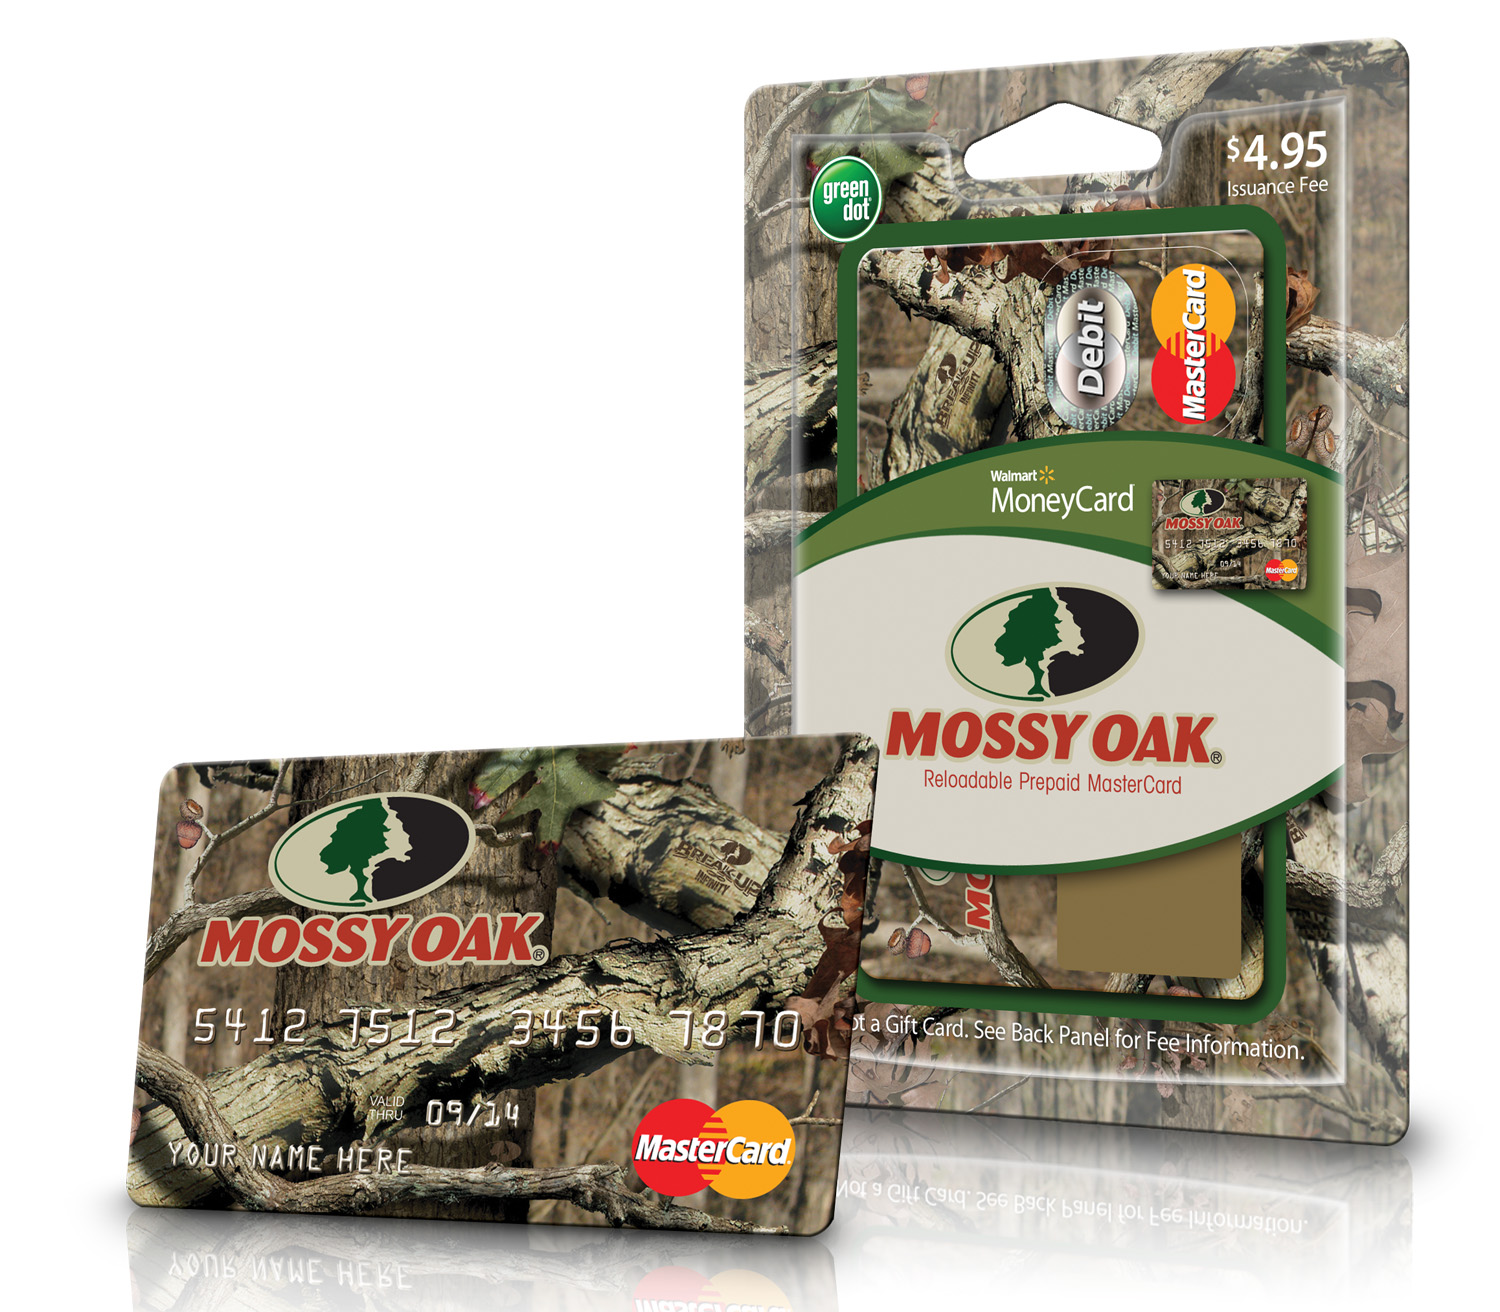 mossy oak prepaid debit moneycard walmart - Visa Money Card